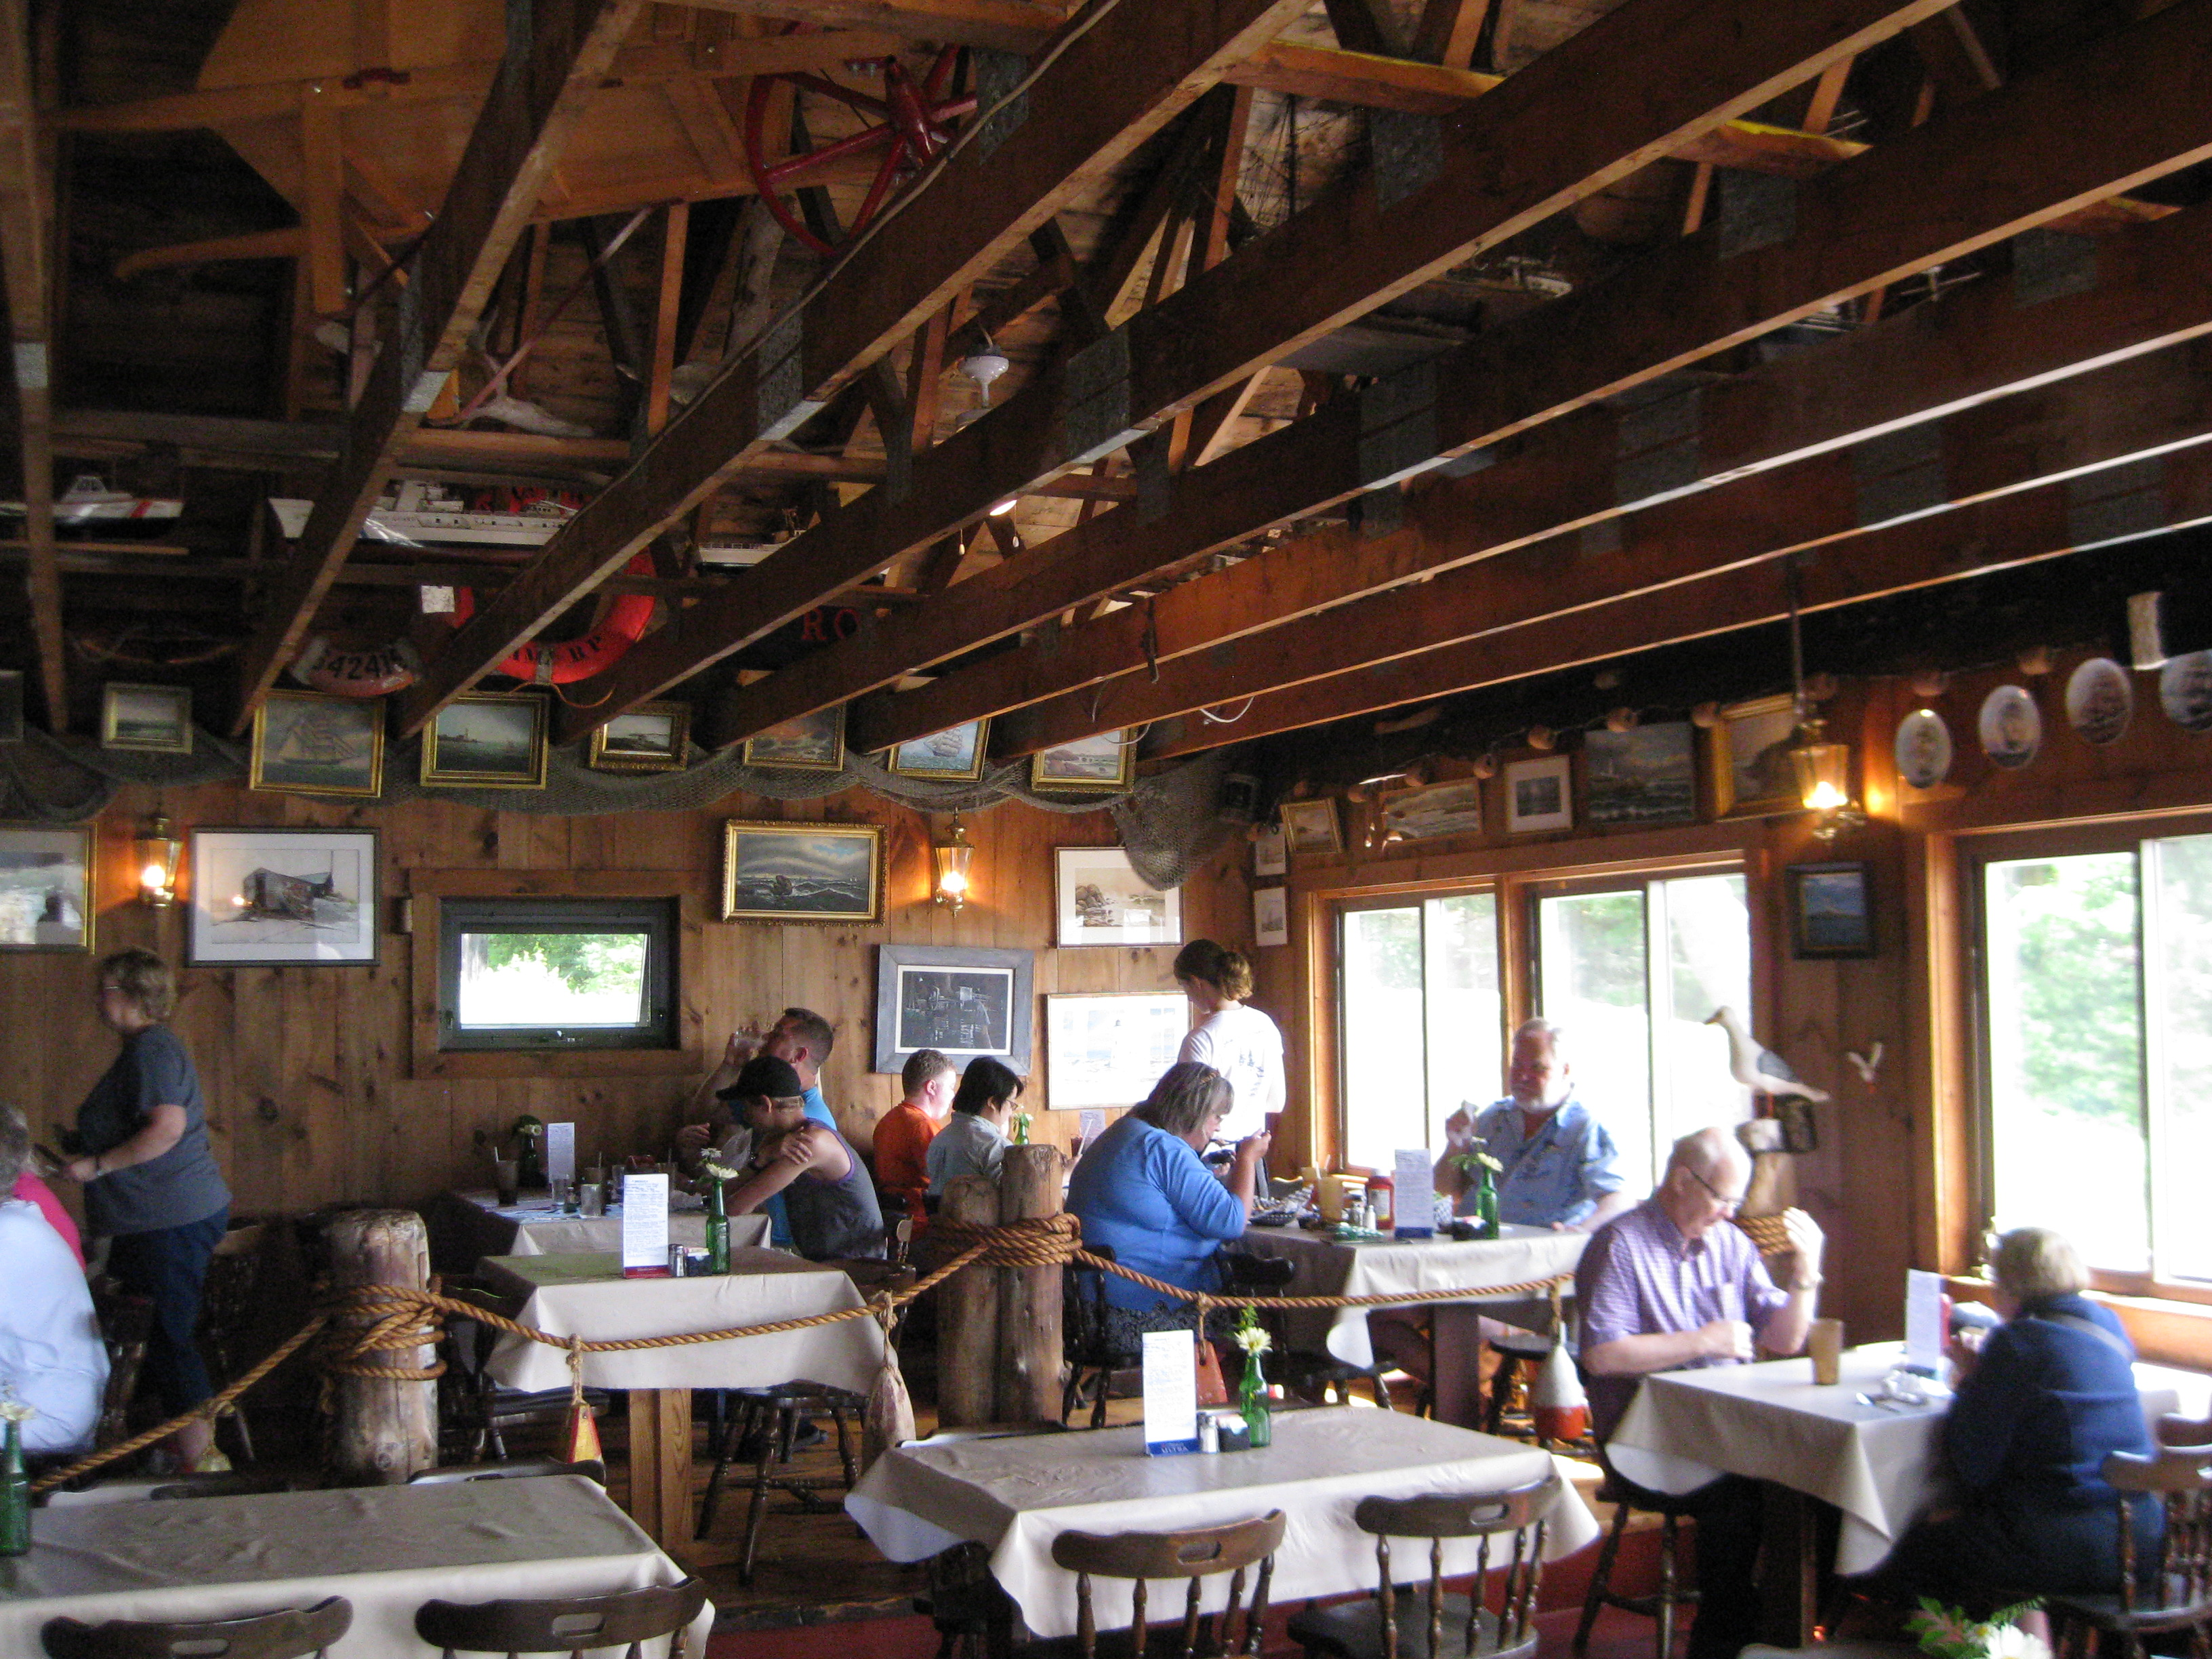 Best Seafood Restaurant In Mid Coast Maine Maine Mid Coast